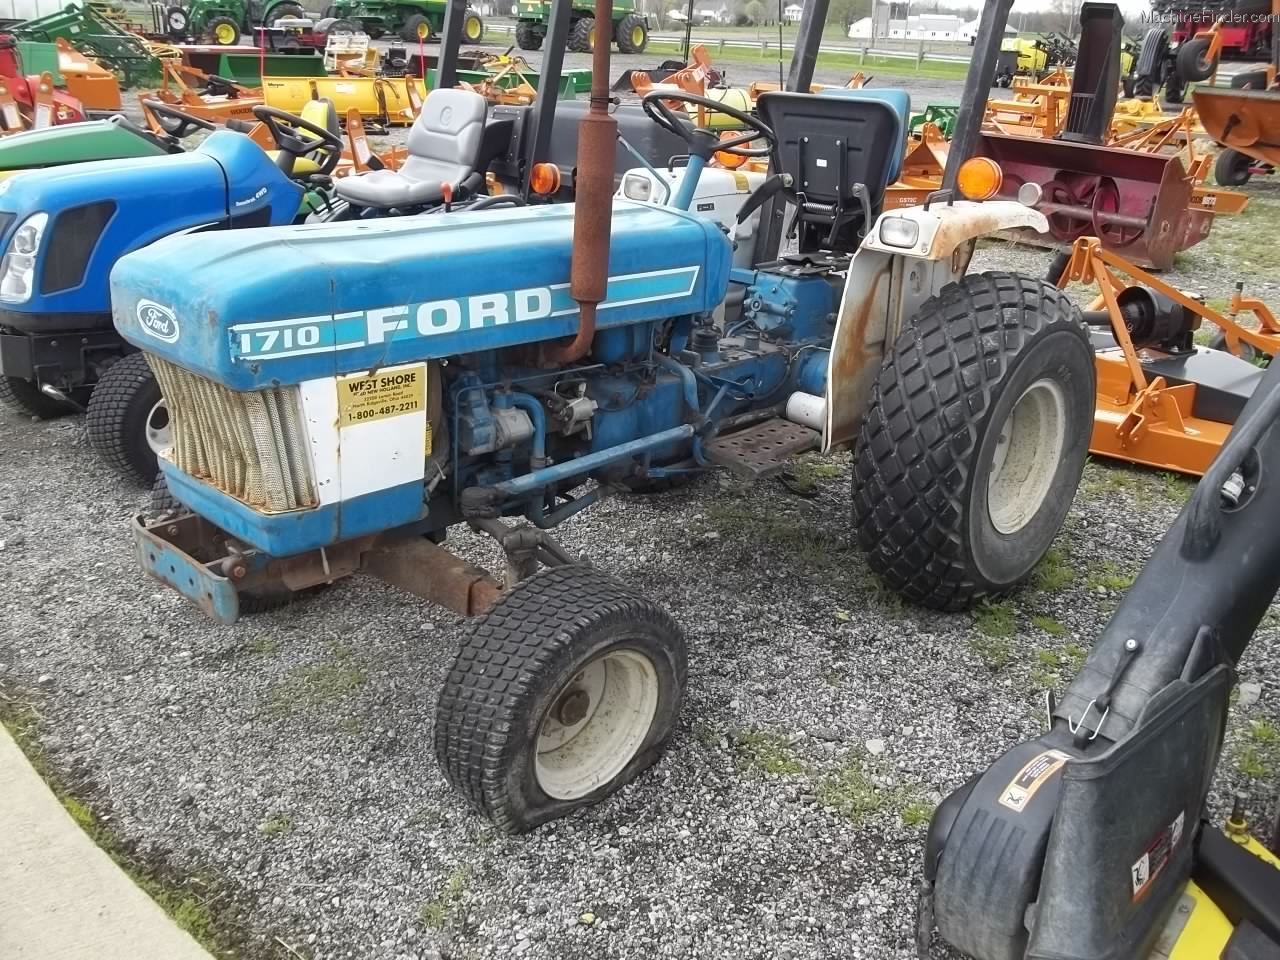 1710 Ford Tractor Wiring Harness Picture Online Parts Catalogue Download